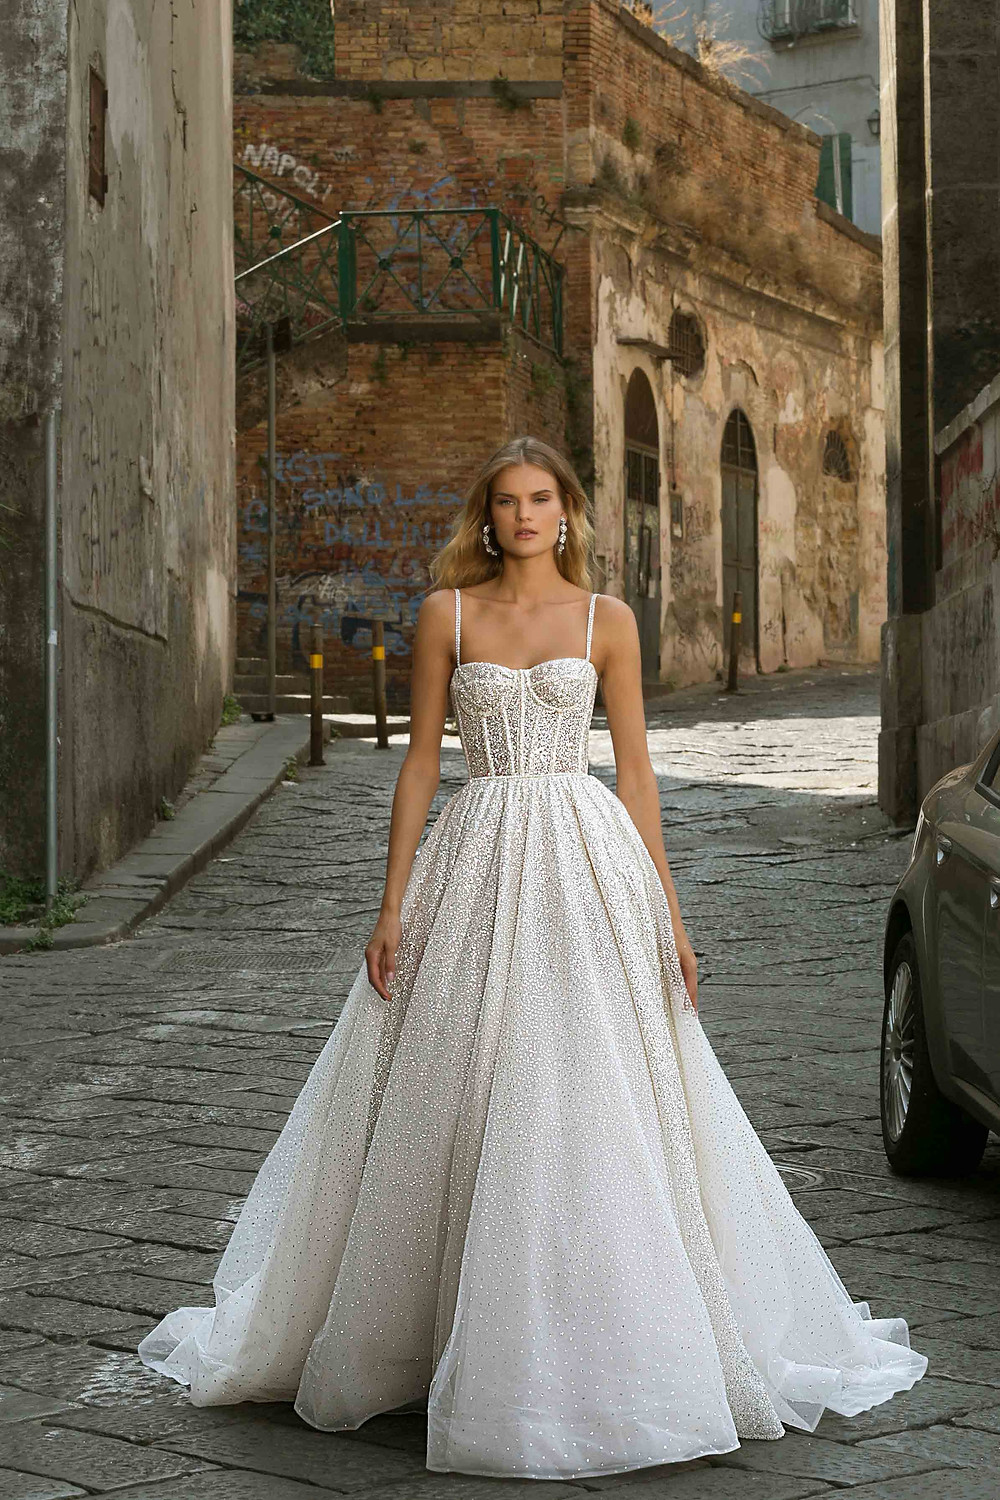 A sparkly ball gown wedding dress, with corset top, thin straps and crystals